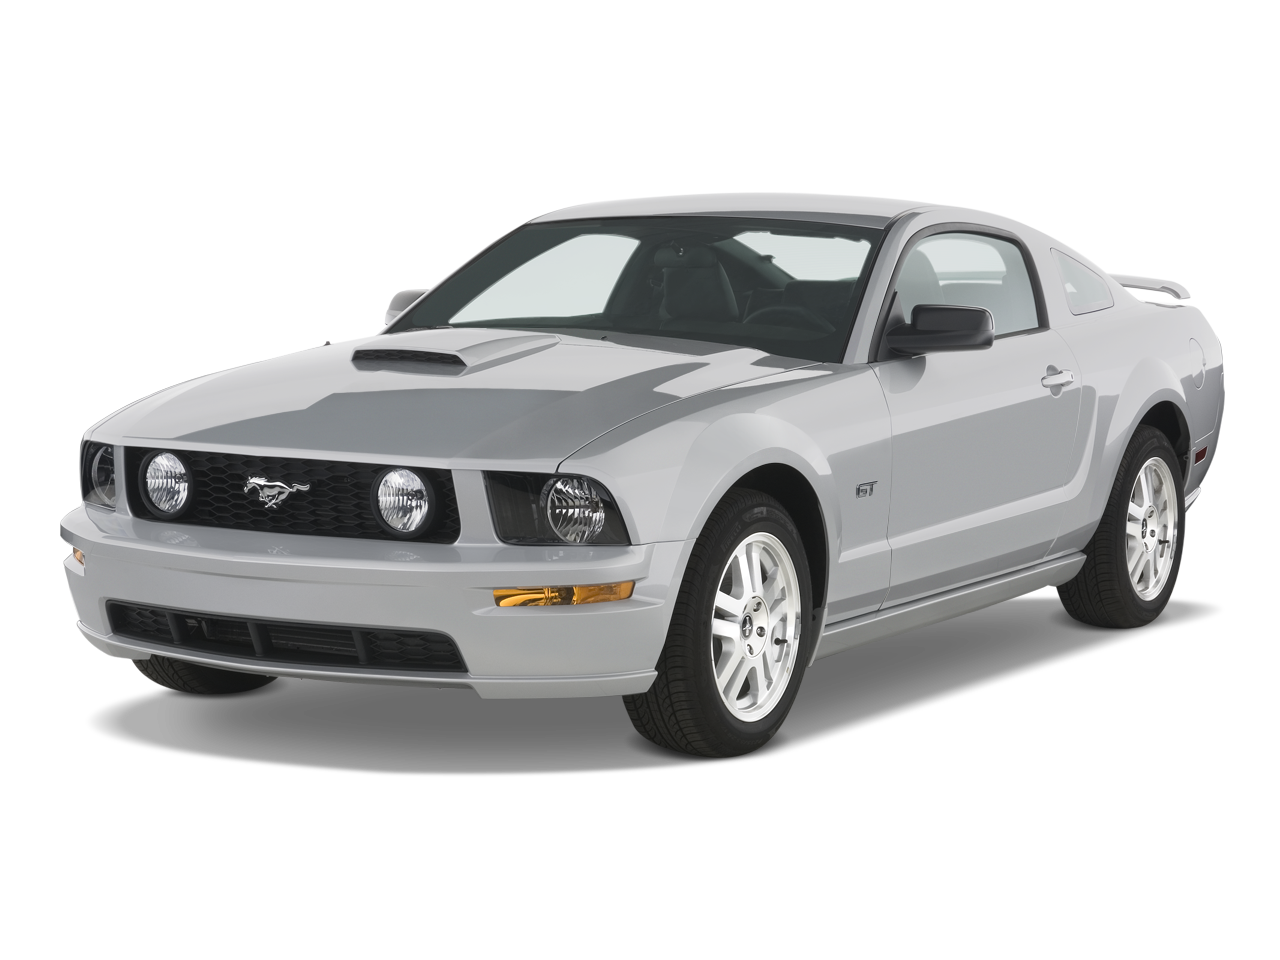 2009 Ford Mustang #22